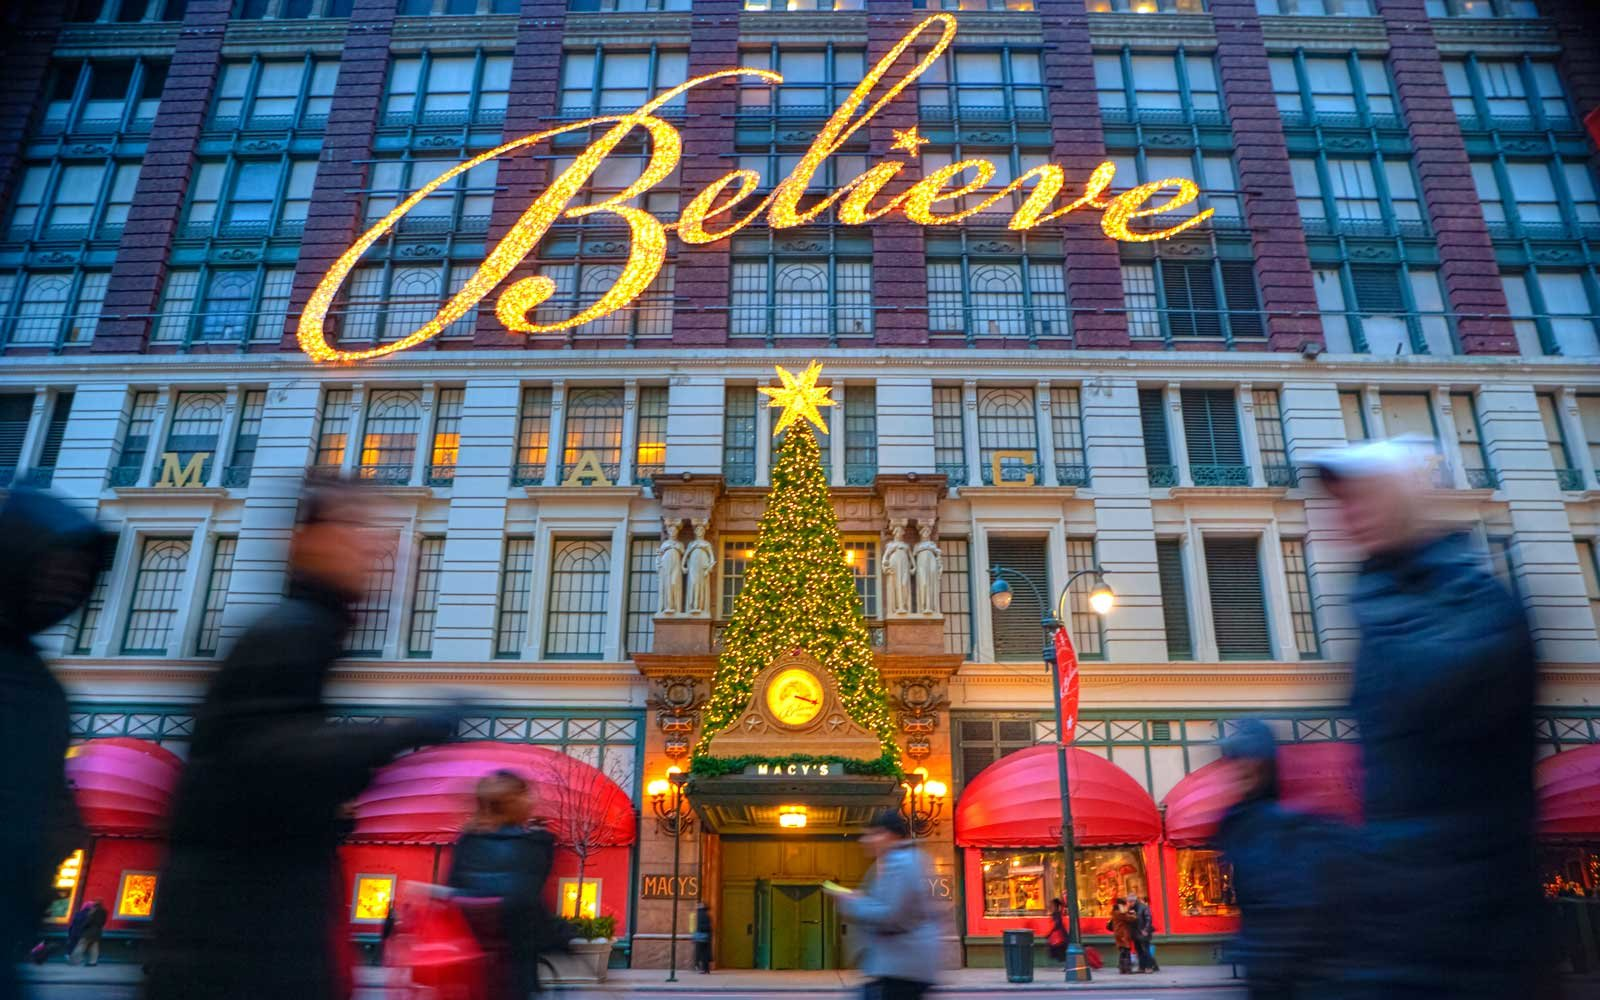 Macy's department store in New York City